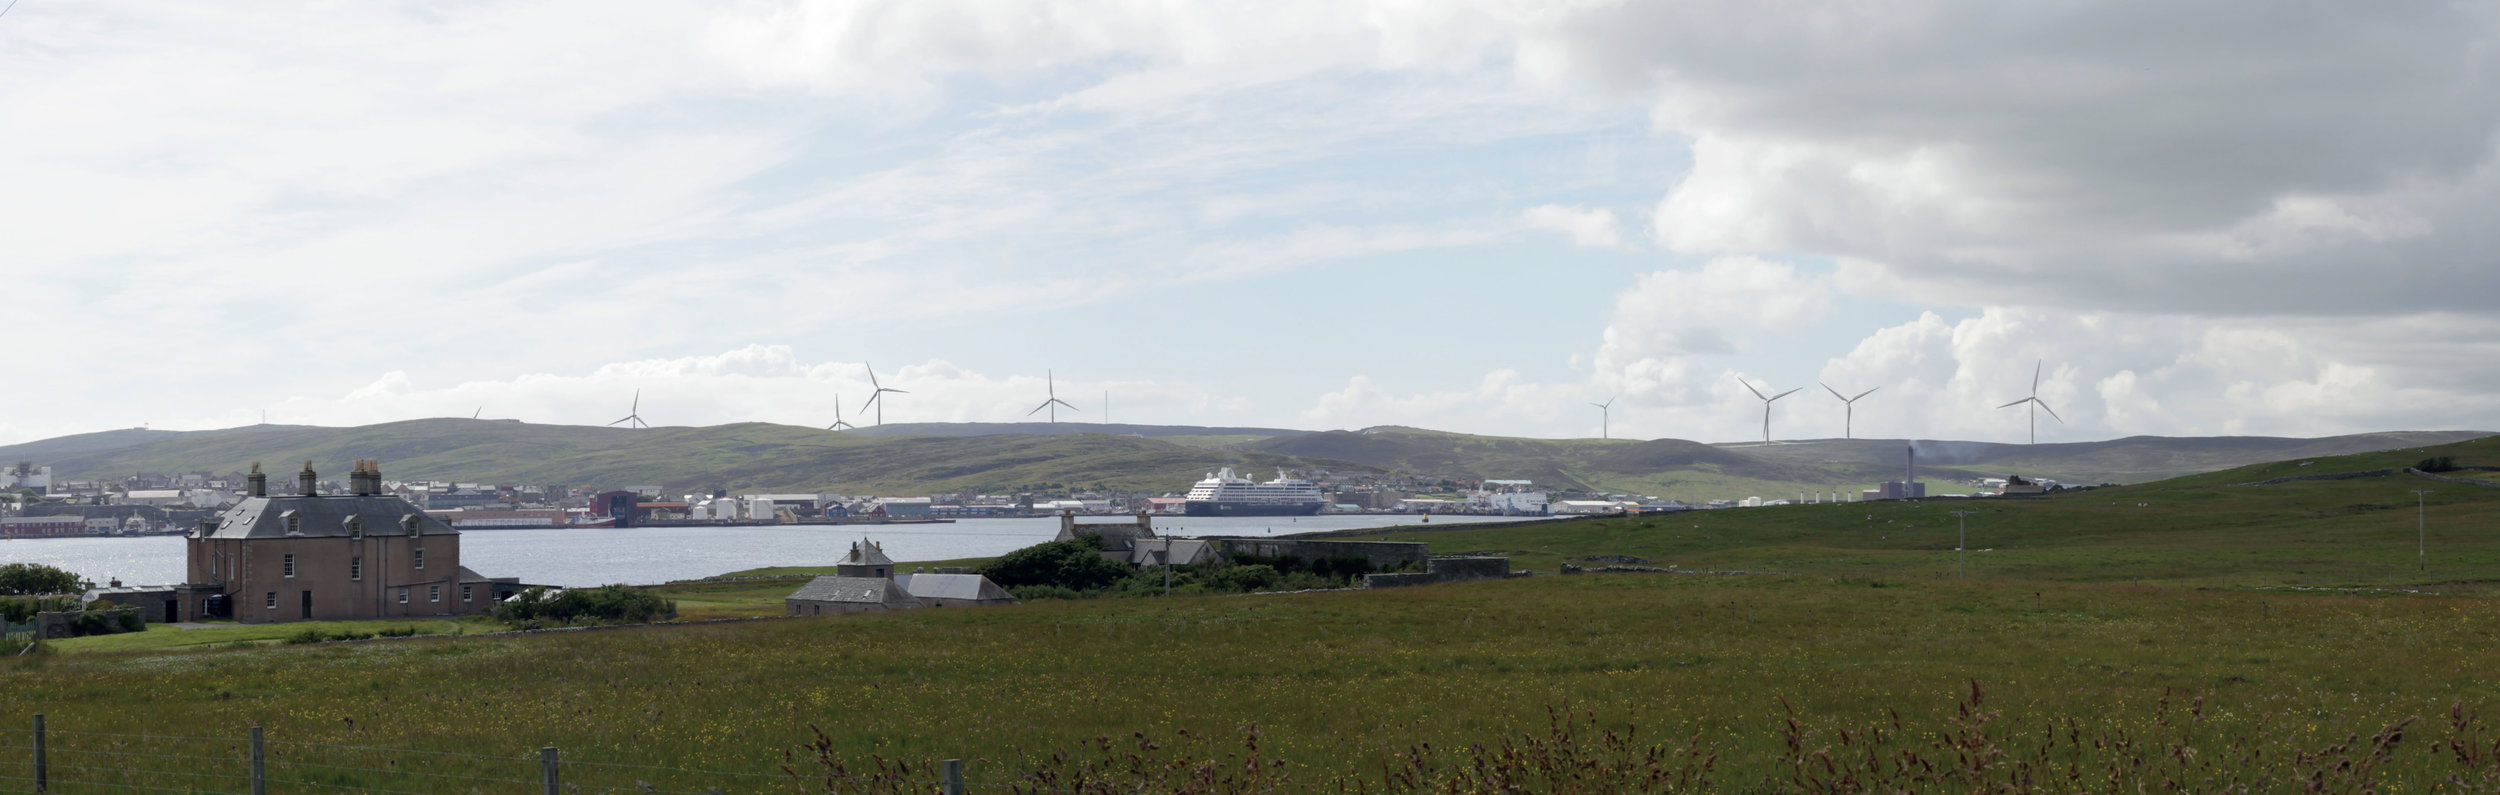 """Peel Energy's Mossy Hill Wind Farm has been given the green light by Shetland Islands Council's planning committee. The 12-turbine site, located between Scalloway and Lerwick, will have a generating capacity of up to 50 megawatts.    This 'Remote Island Wind' development, approved on Monday 15th April, is anticipated to generate renewable electricity for 25 years before being decommissioned. Mossy Hill Wind Farm will play an important role in Shetland's future energy supply and the development itself is anticipated to make significant contributions towards the economy of Shetland.    A new sub-sea cable is being proposed separately, to connect all of Shetland's renewable energy generation to mainland Scotland, some 196 kilometres south of Mossy Hill. In order to fund this interconnector cable, the Government has announced that Remote Island Wind projects will be eligible to take part in a competitive Contract for Difference auction which provides financial support for renewable energy projects.    Muir Miller, Managing Director of Peel Energy, part of Peel L&P said: """"The recent planning approval for Mossy Hill Wind Farm brings us one step closer to providing a clean, affordable and secure source of electricity as well as long lasting and tangible benefits for Shetland communities and the surrounding environment.""""    """"We are now considering our Contracts for Difference (CfD) bid, the consultation on the proposed HVDC link and the grid connection. We will continue to liaise with all relevant stakeholders in expectation of bringing this development forward to deliver its range of benefits.""""    For more information about the project, please visit:  www.peelenergy.co.uk/mossy-hill"""